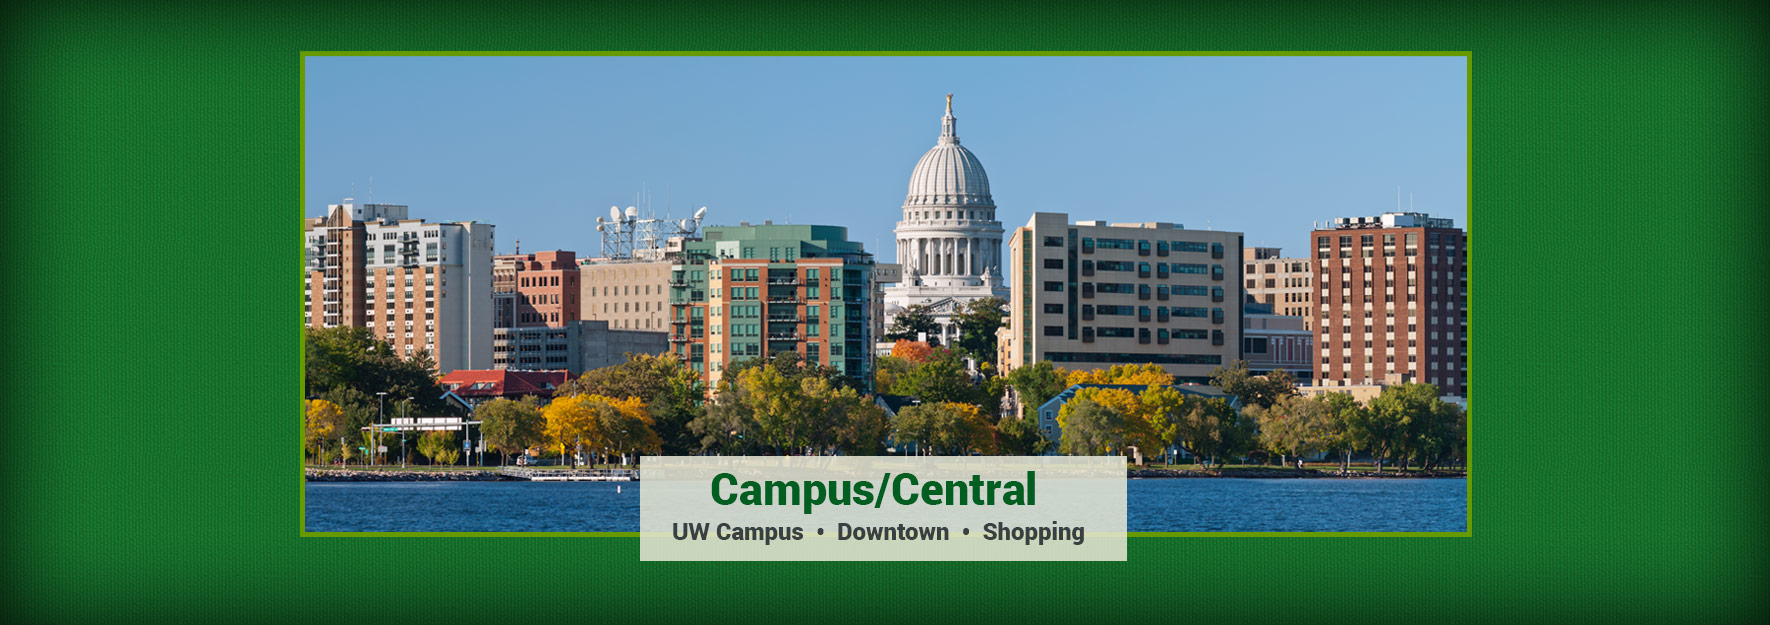 Campus/Central Properties